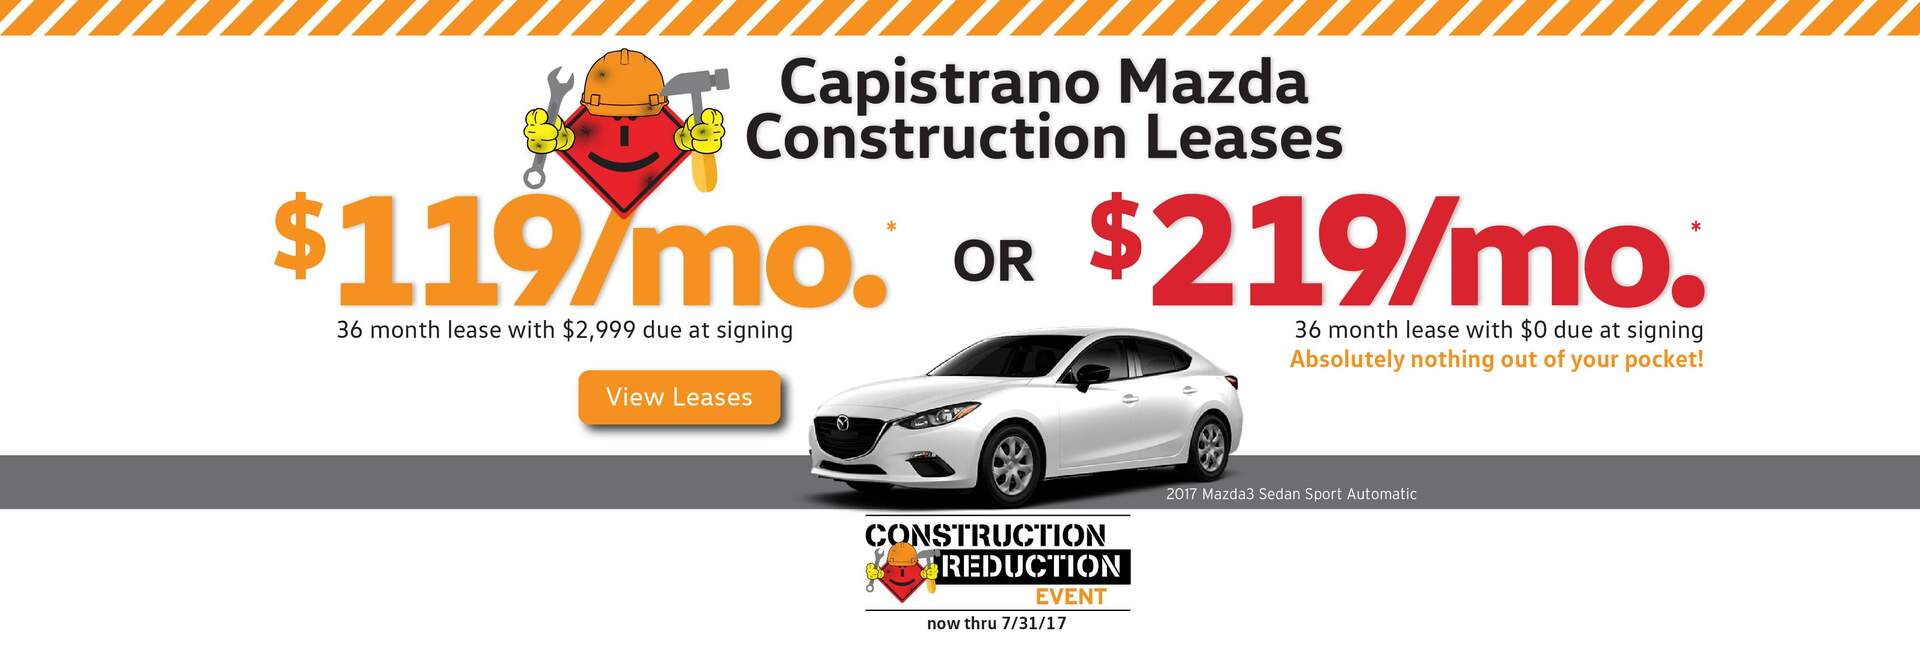 Capistrano Mazda Construction Reduction Leases on new Mazda models, $0 due at signing lease options